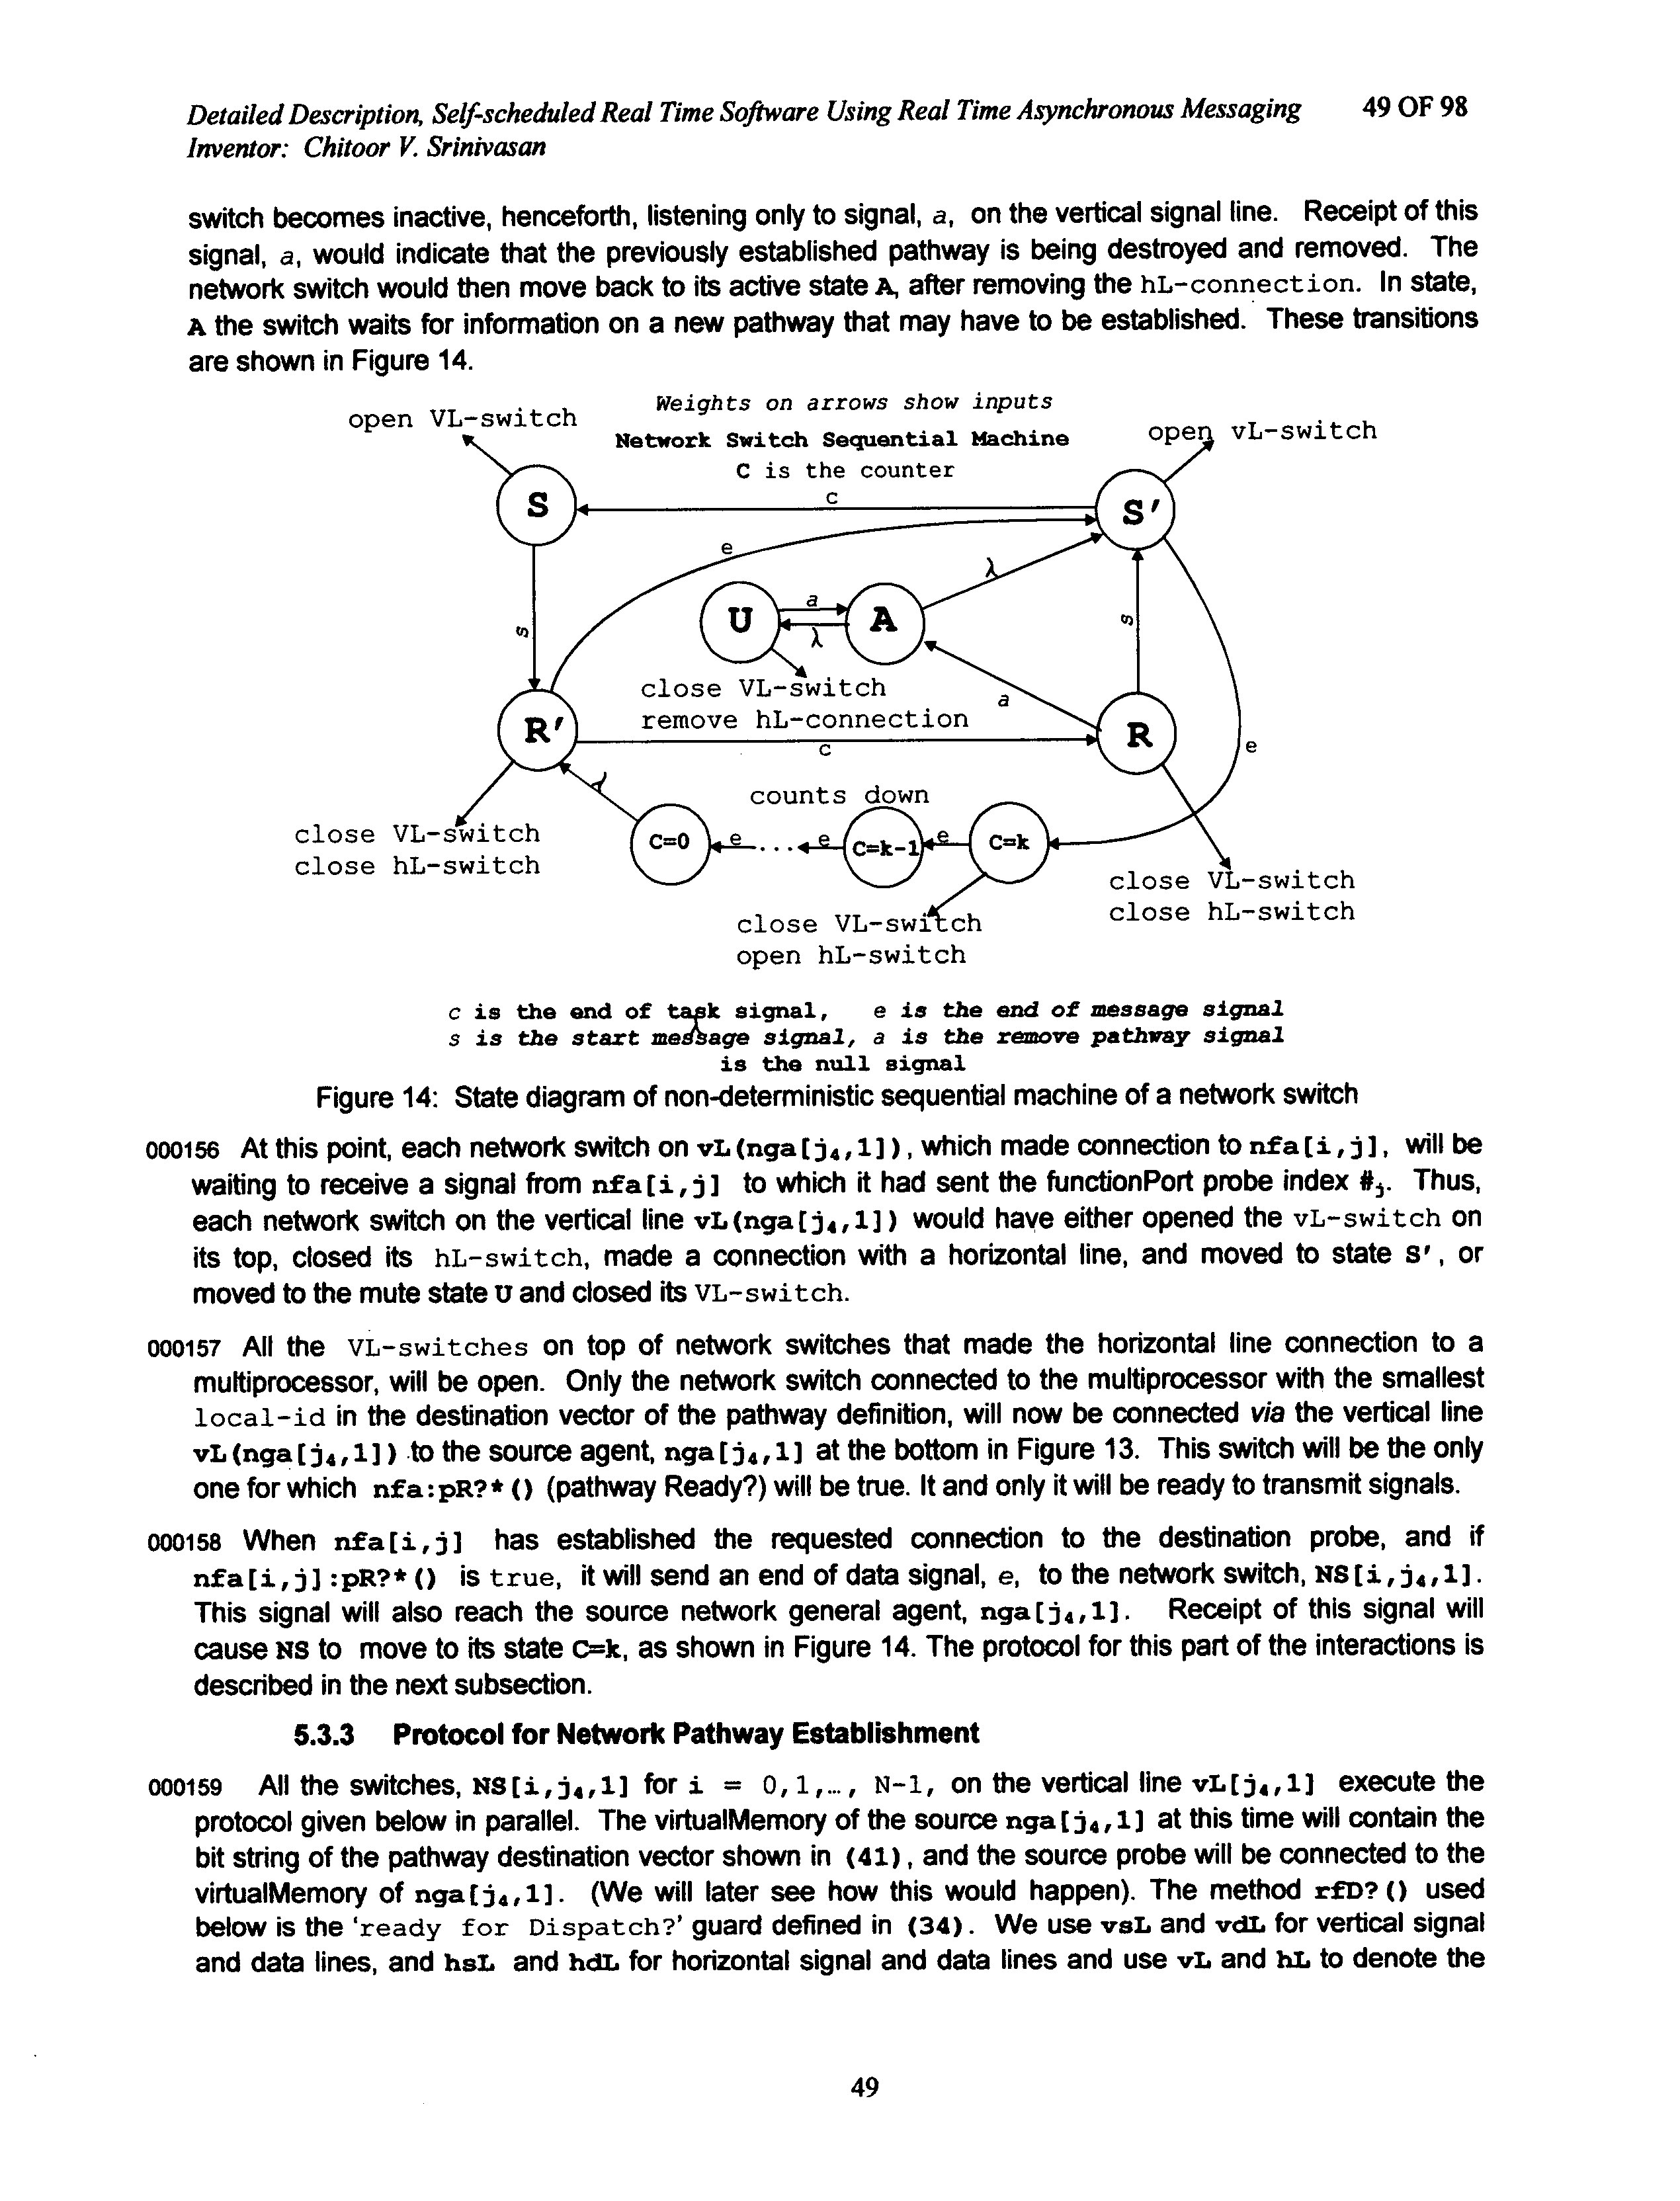 US20070277152A1 - Self-scheduled real time software using real time ...